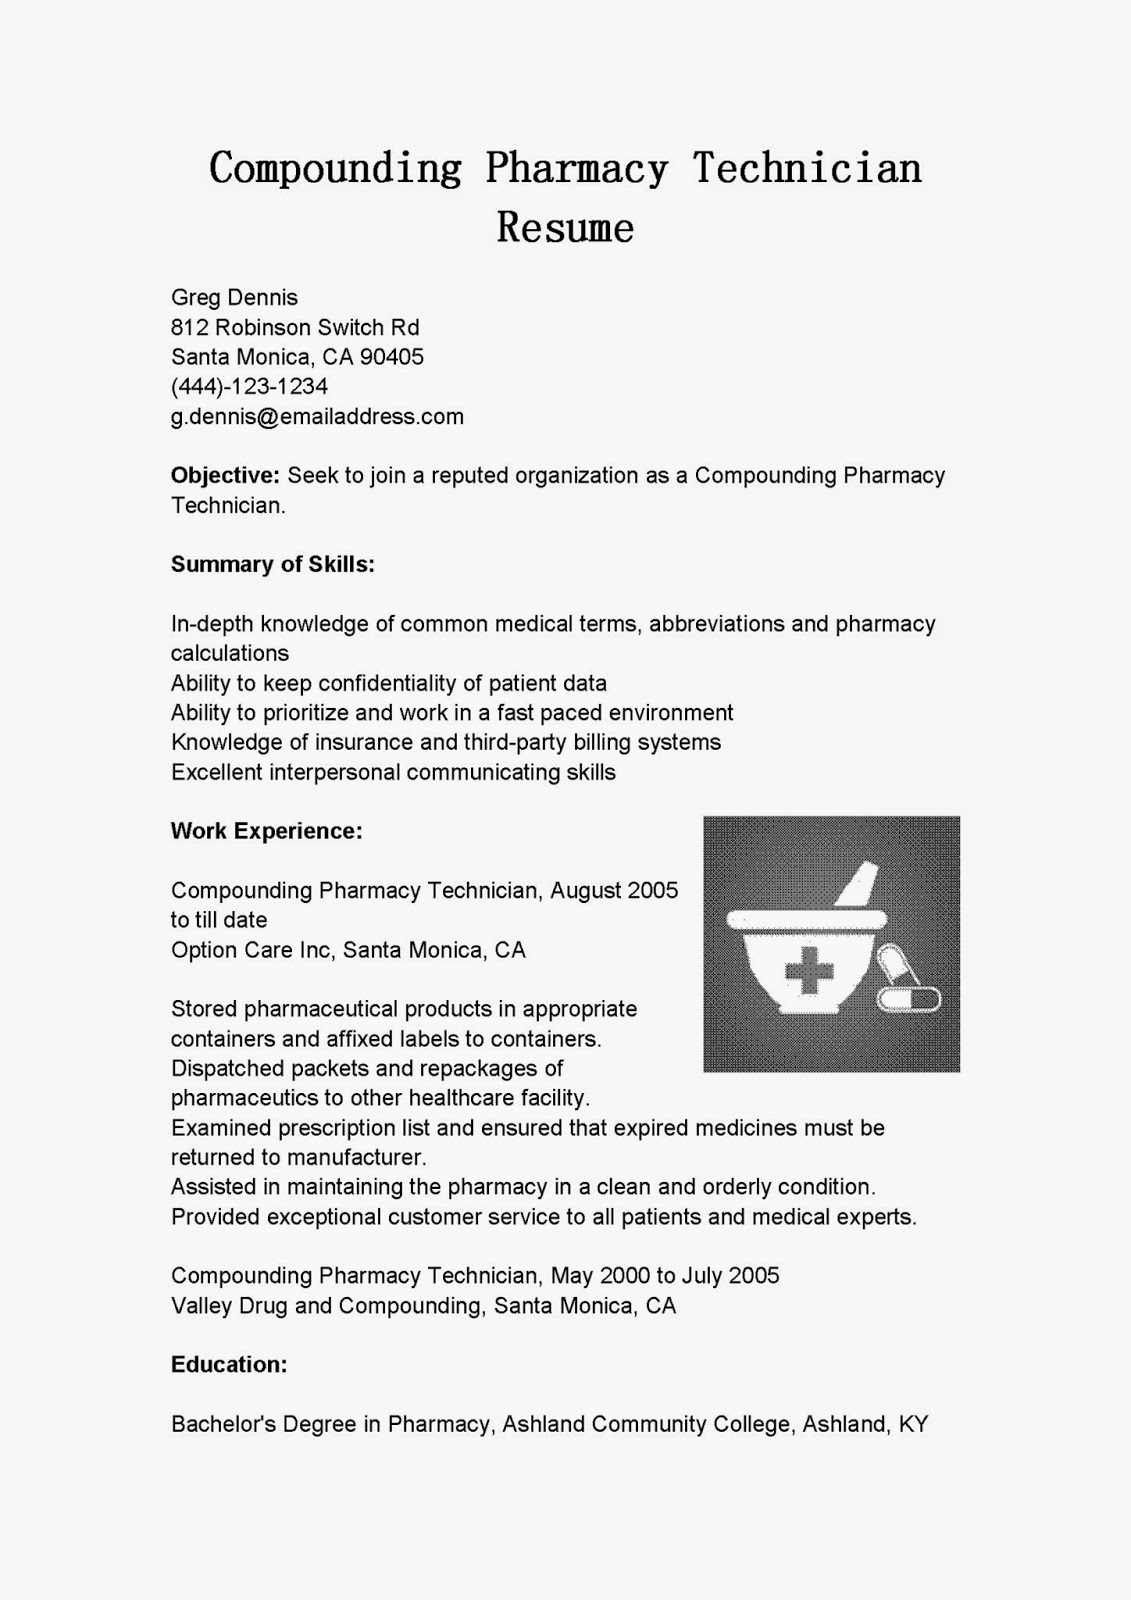 compounding pharmacy technician cover letter sample professional compounding pharmacy technician cover letter sample pharmacy technician cover letter sample sample resume student nursing home